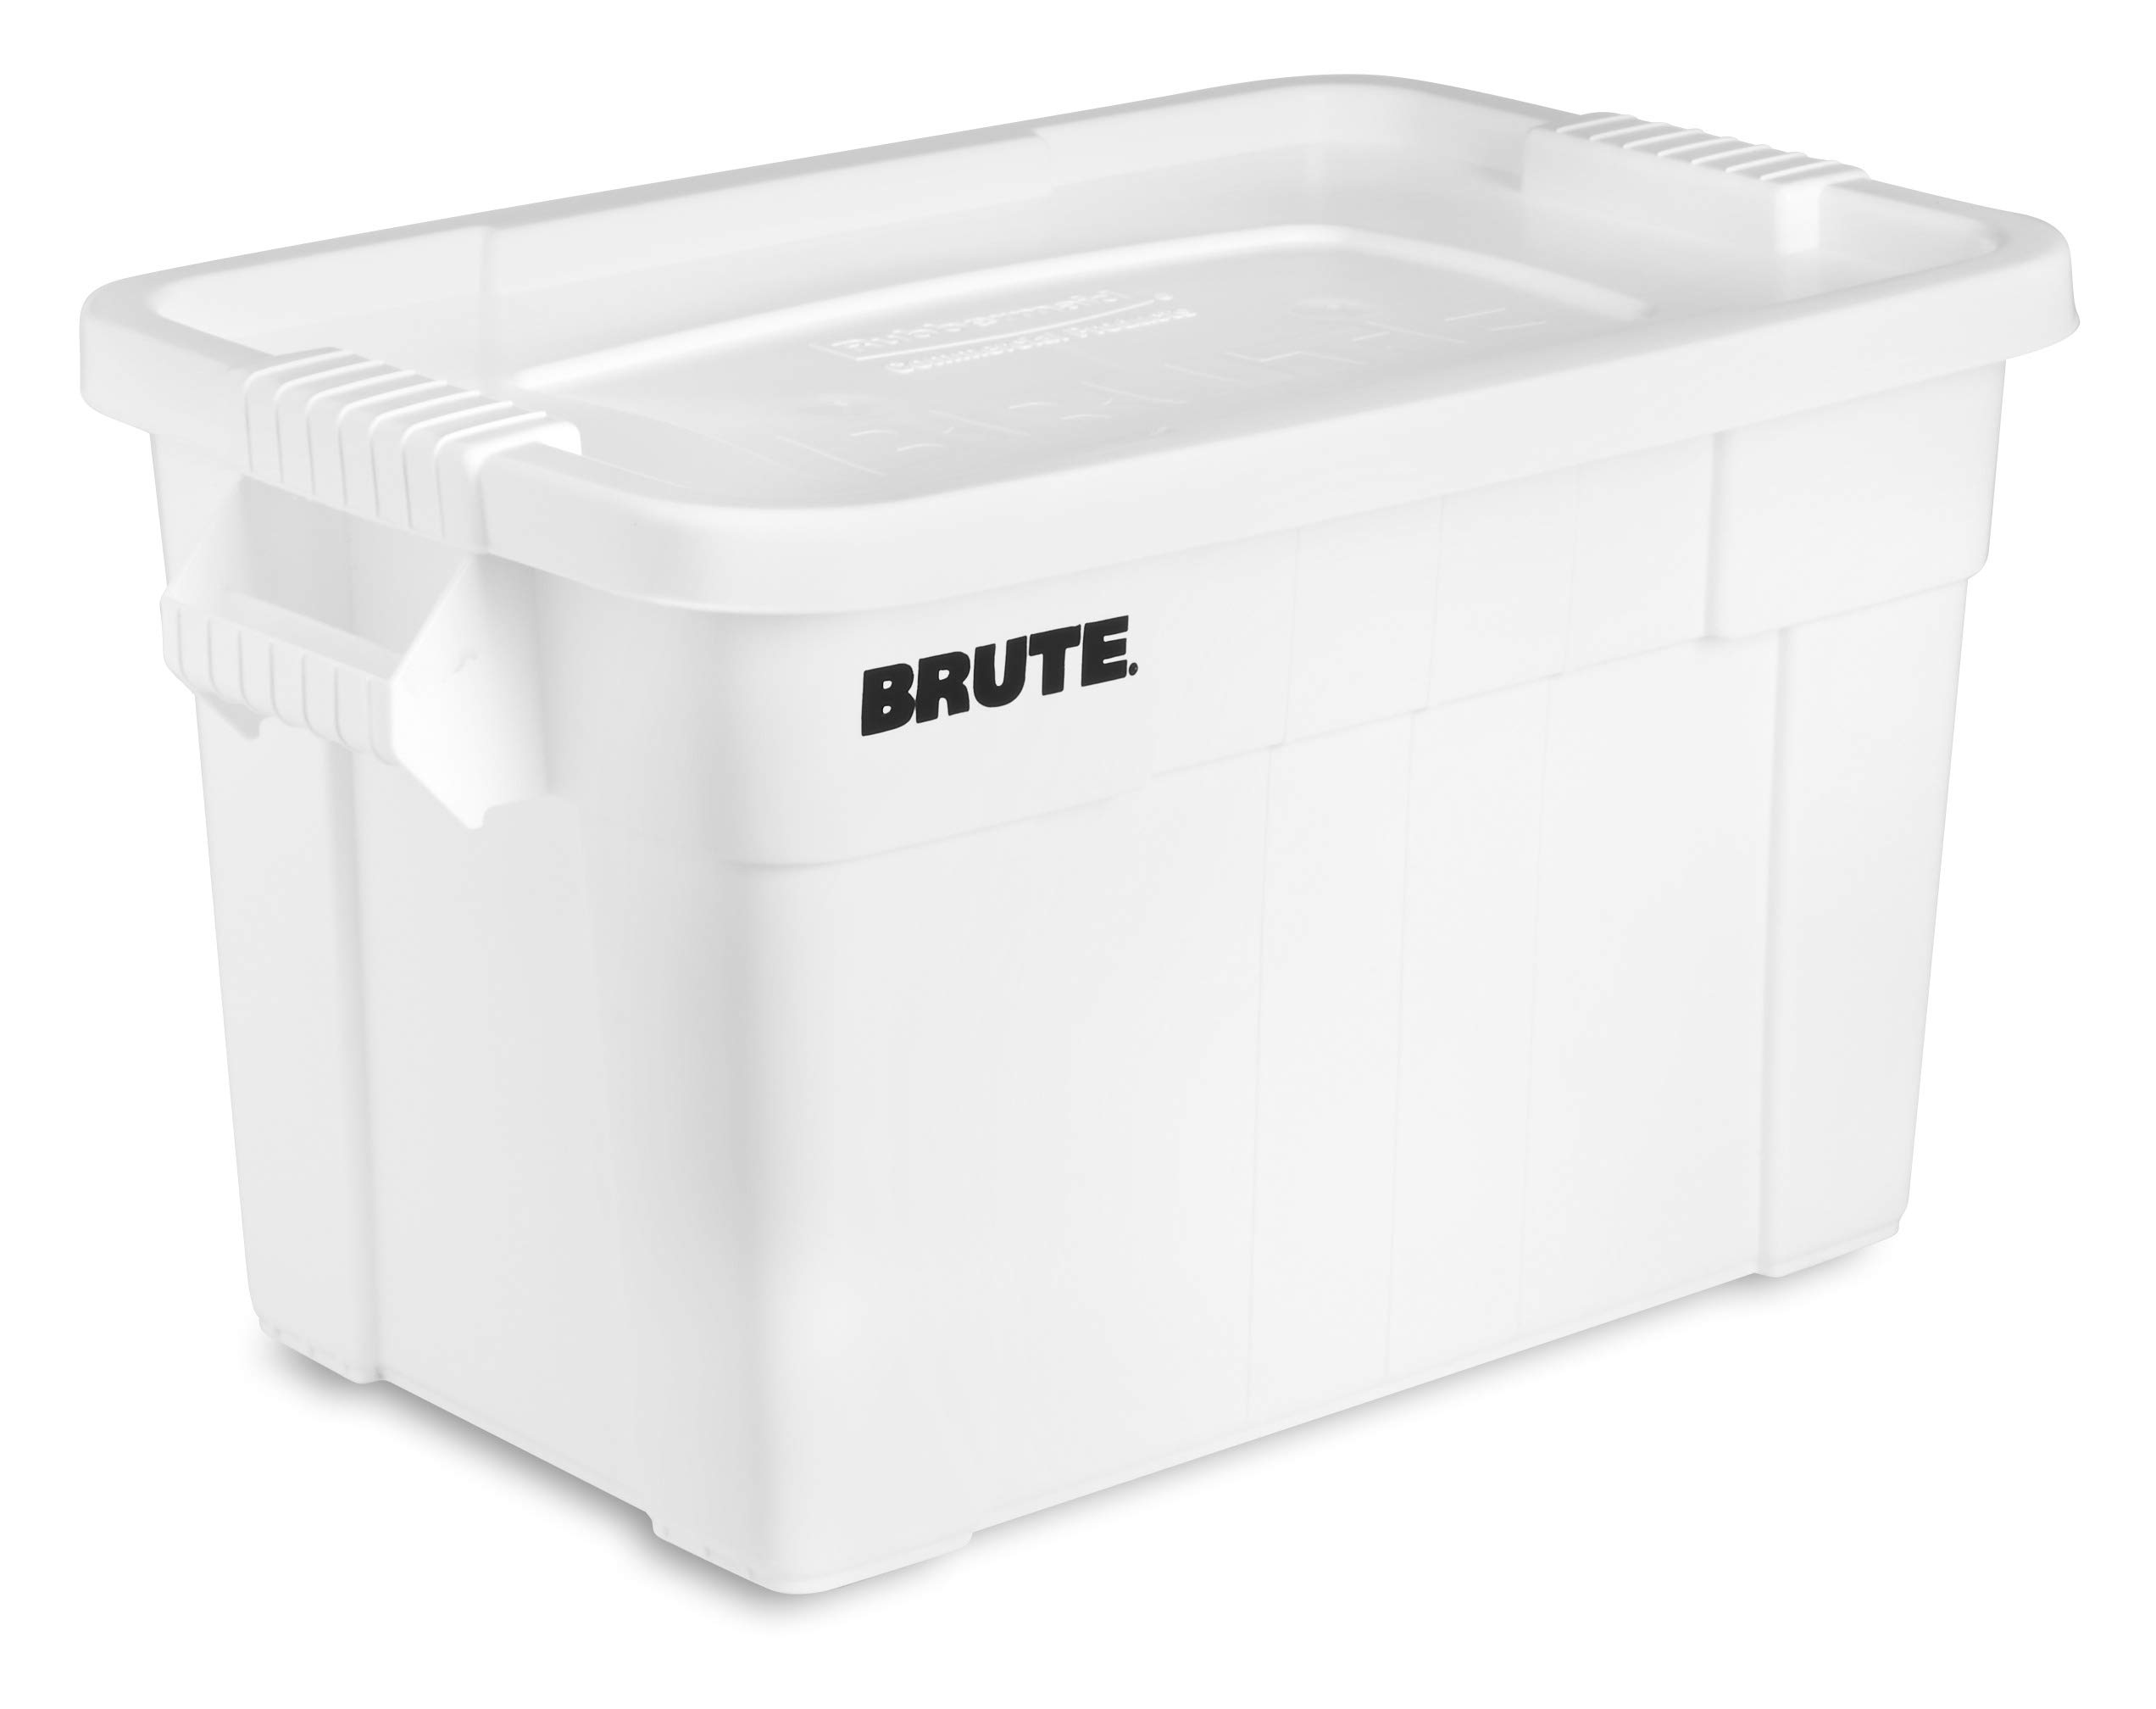 Rubbermaid Commercial Products Brute Tote Storage Container with Lid, 20-Gallon, White (FG9S3100WHT) (Pack of 6)